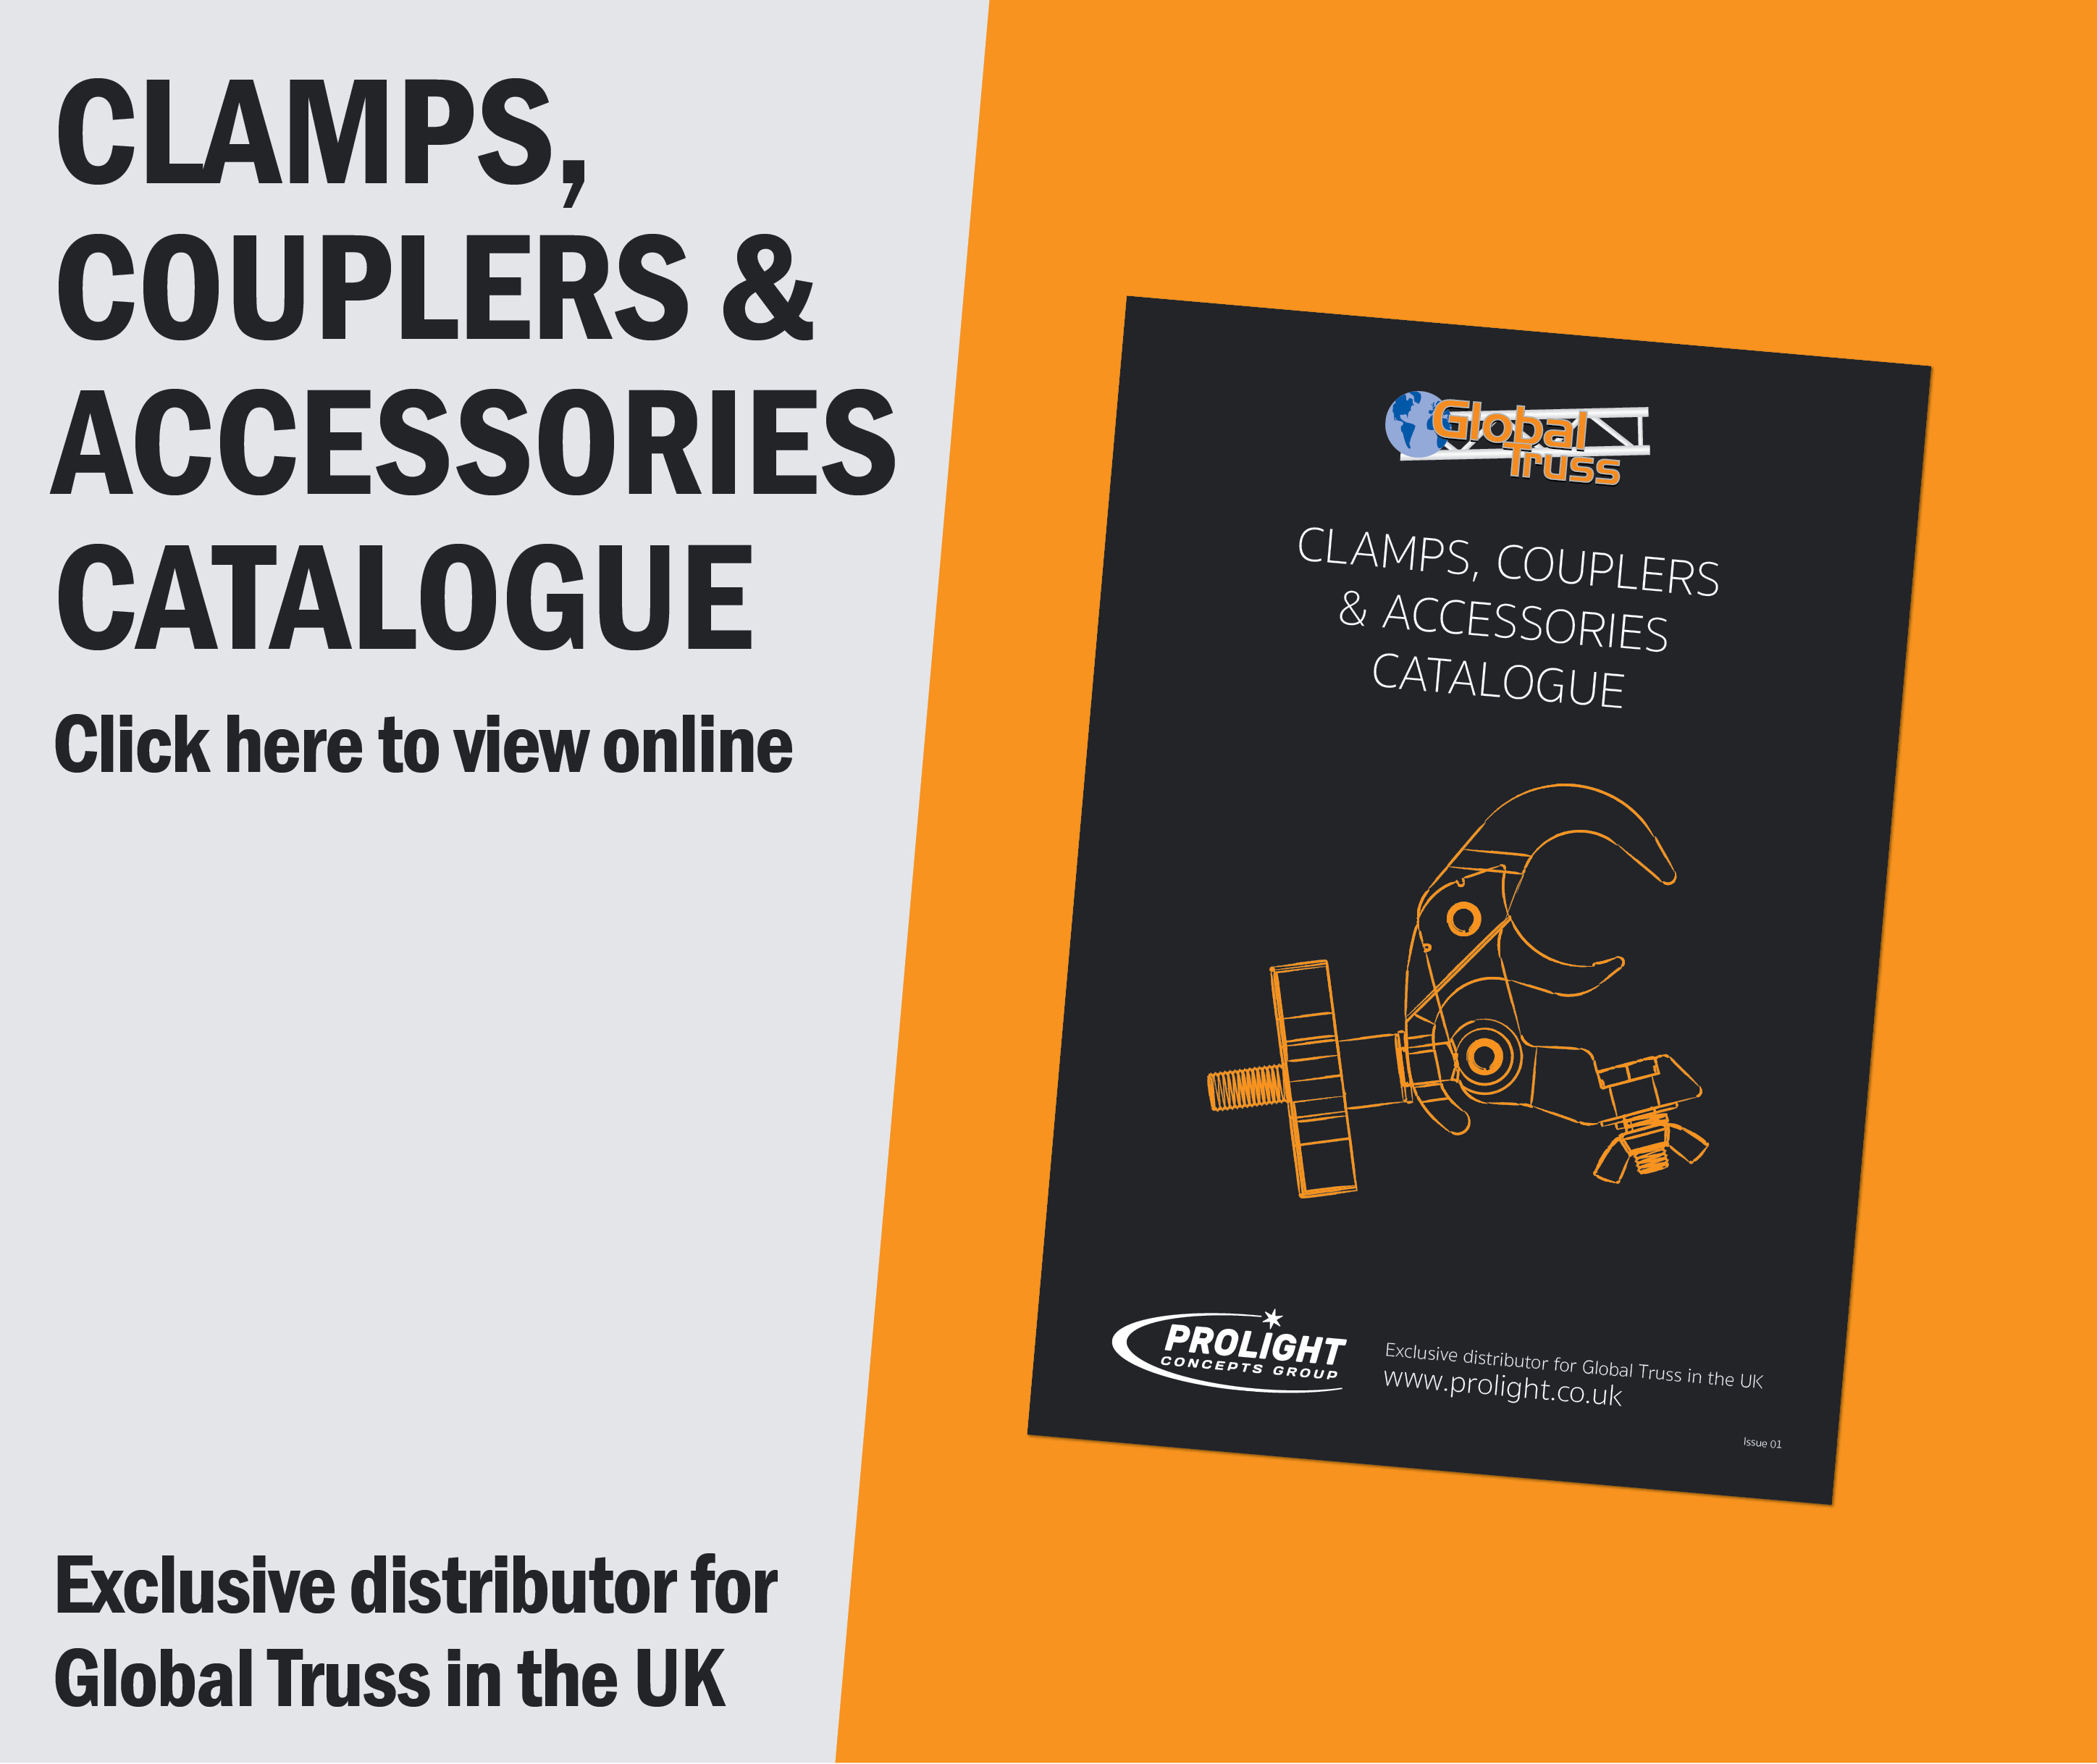 Prolight Concepts Clamps, Couplers and Accessories Catalogue